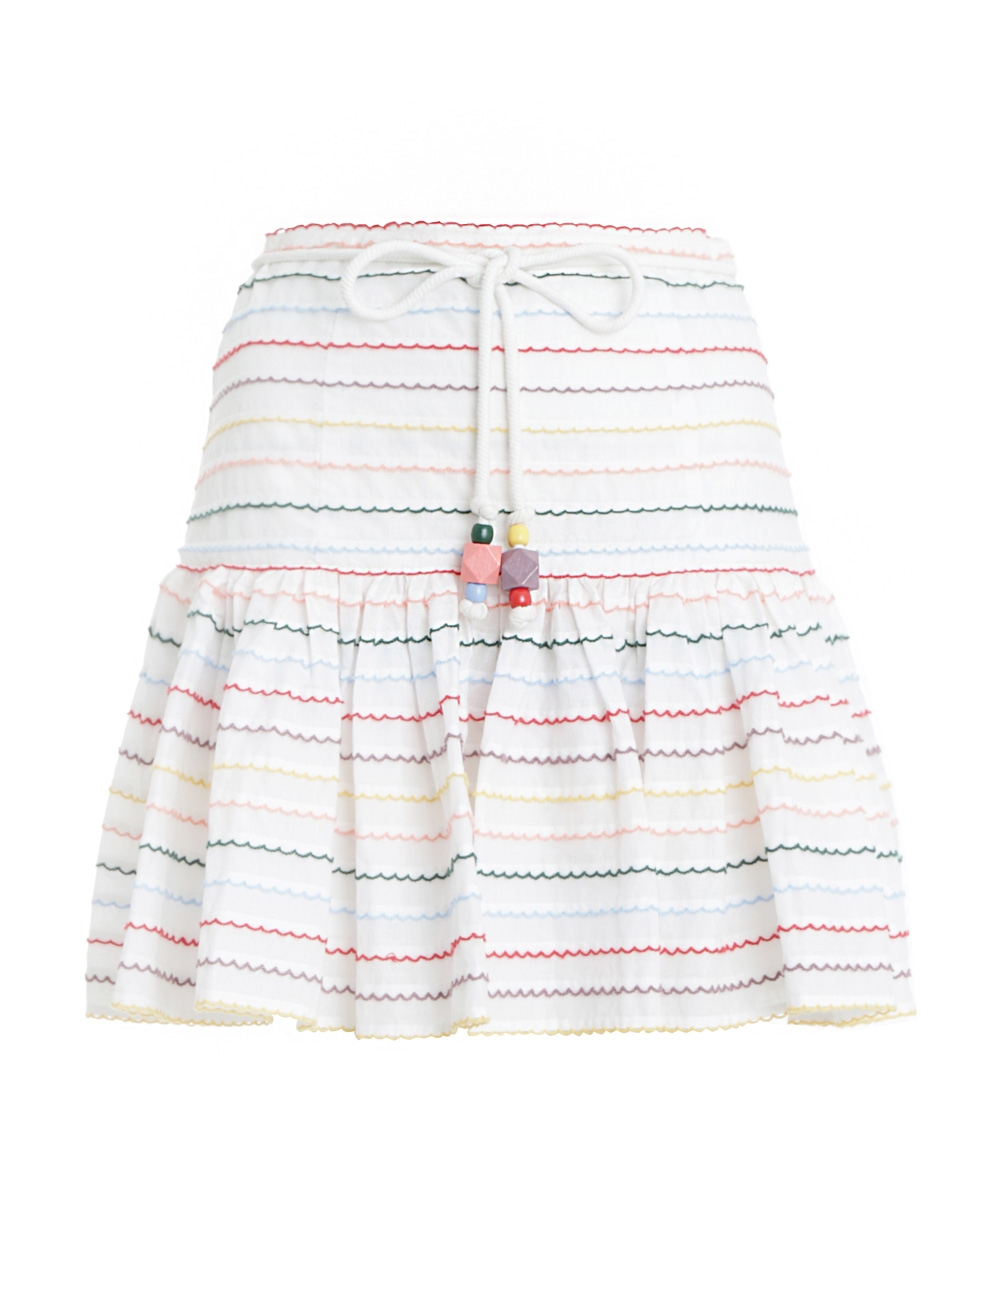 Zinnia Scallop Stripe Skirt